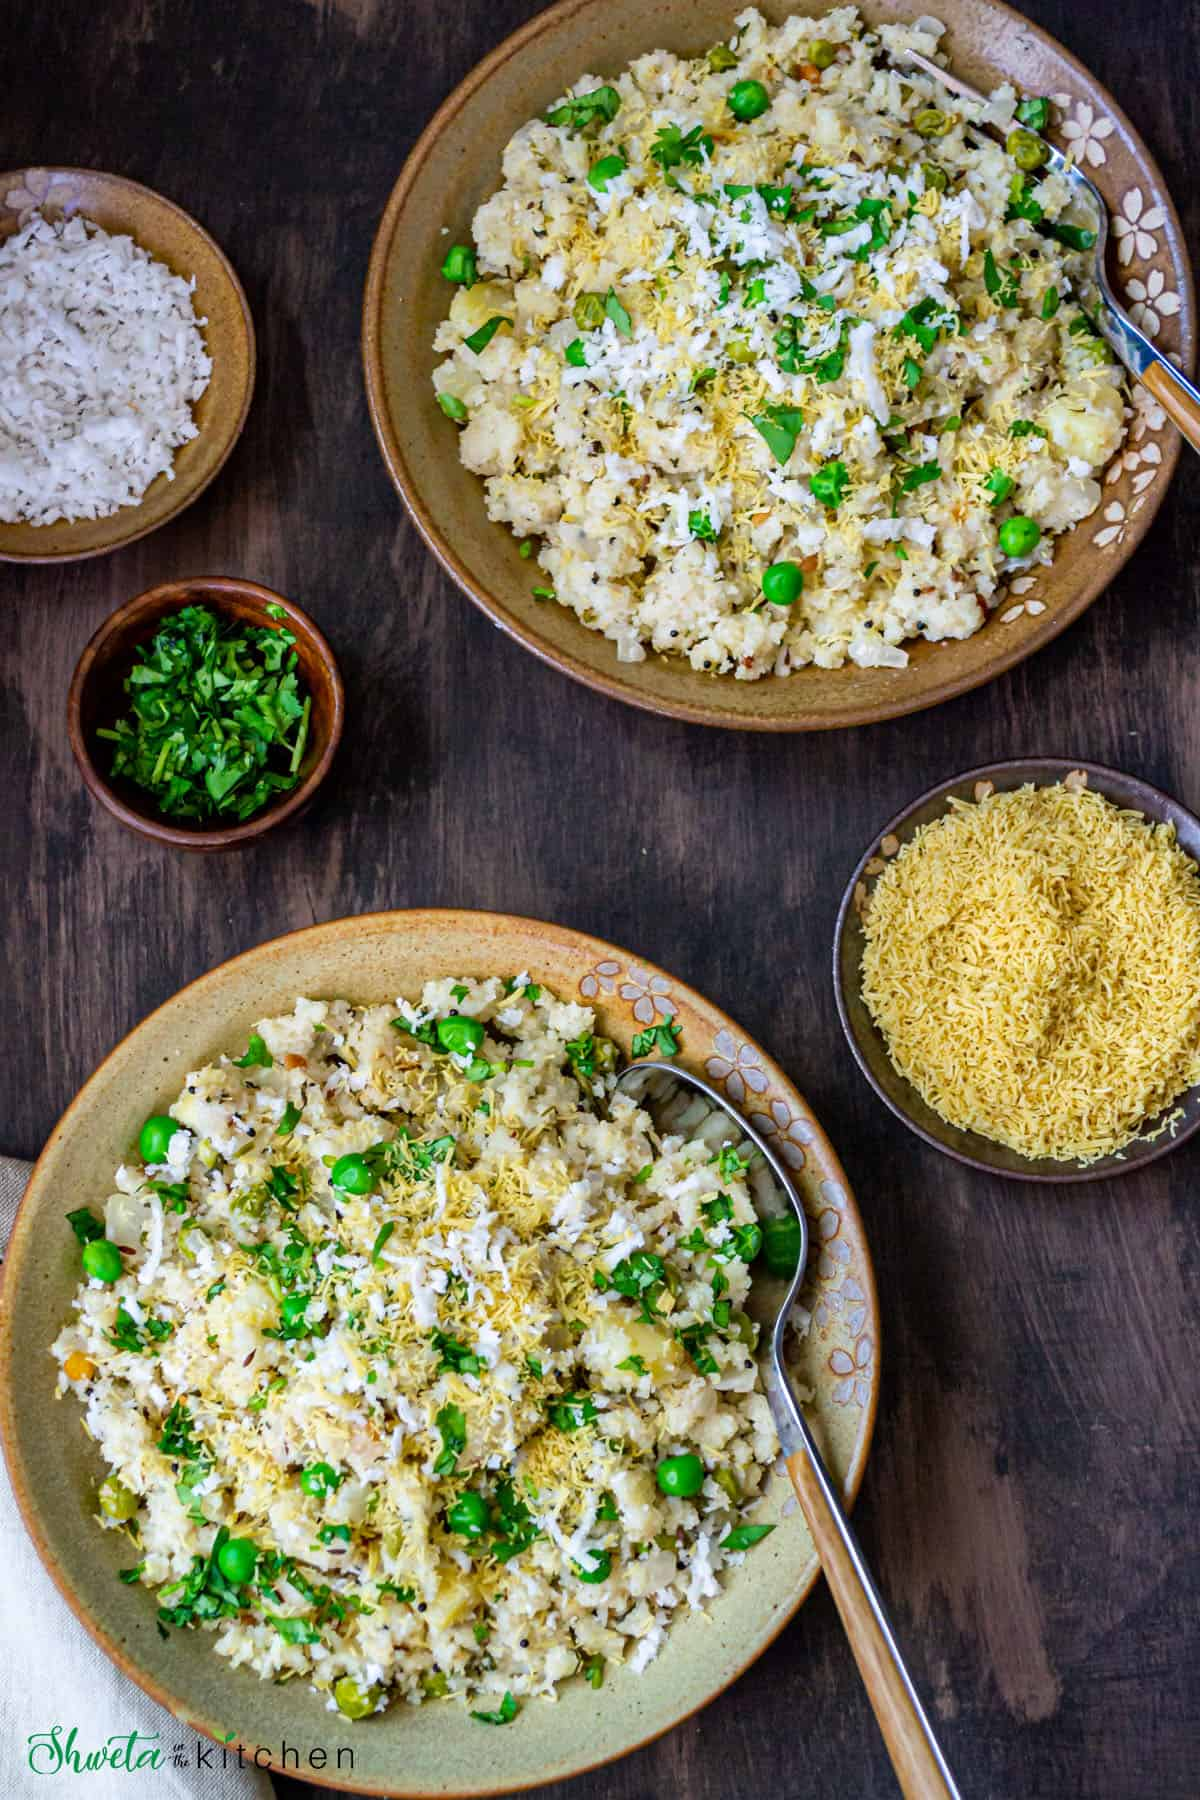 Two bowls of rava upma with spoons along with bowls on sev, cilantro and coconut